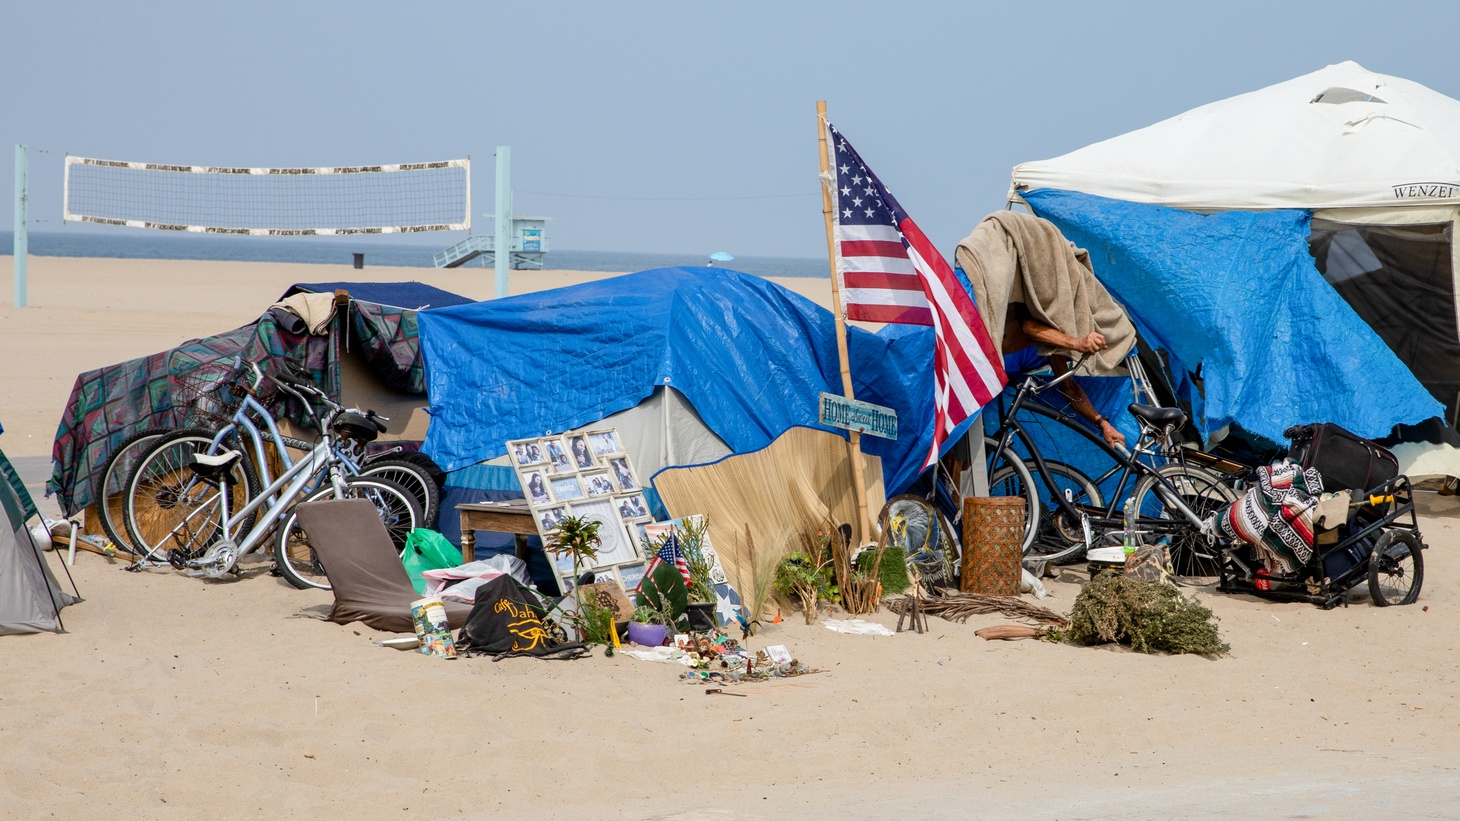 A homeless encampment sits along the Venice Beach boardwalk on June 29, 2021. Governor Gavin Newsom and the California Legislature have agreed to spend $12 billion over a two-year period to combat homelessness.